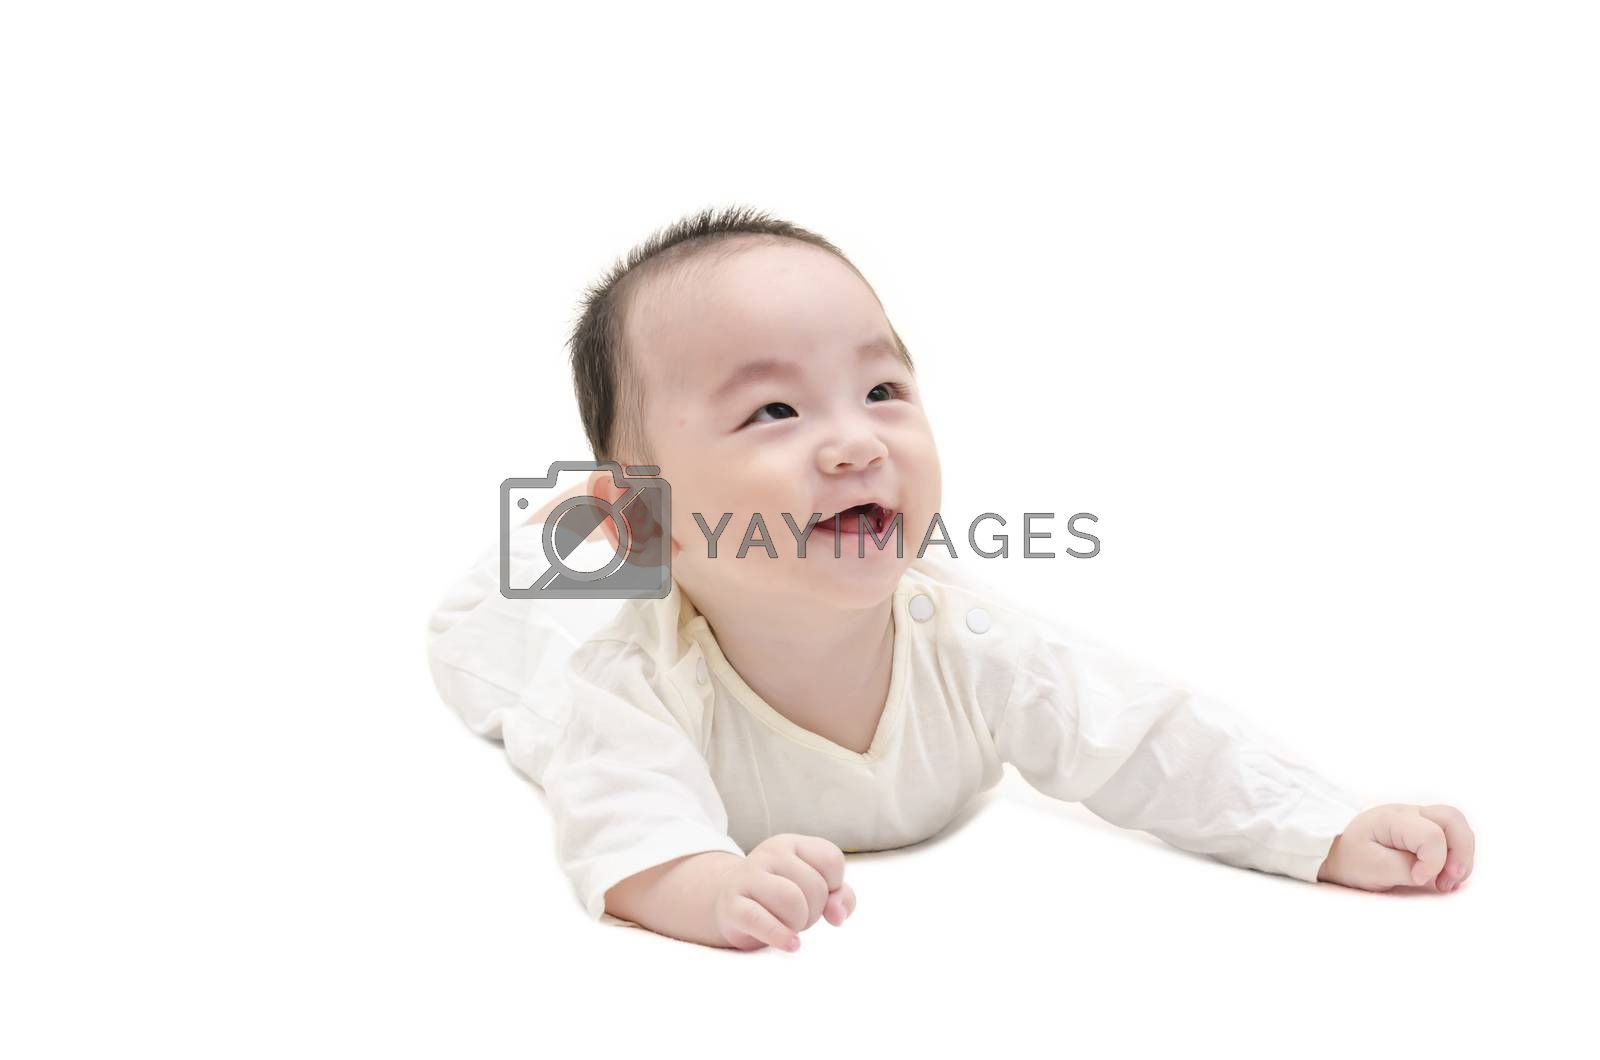 Royalty free image of Cute baby lying on white floor by FrankyLiu